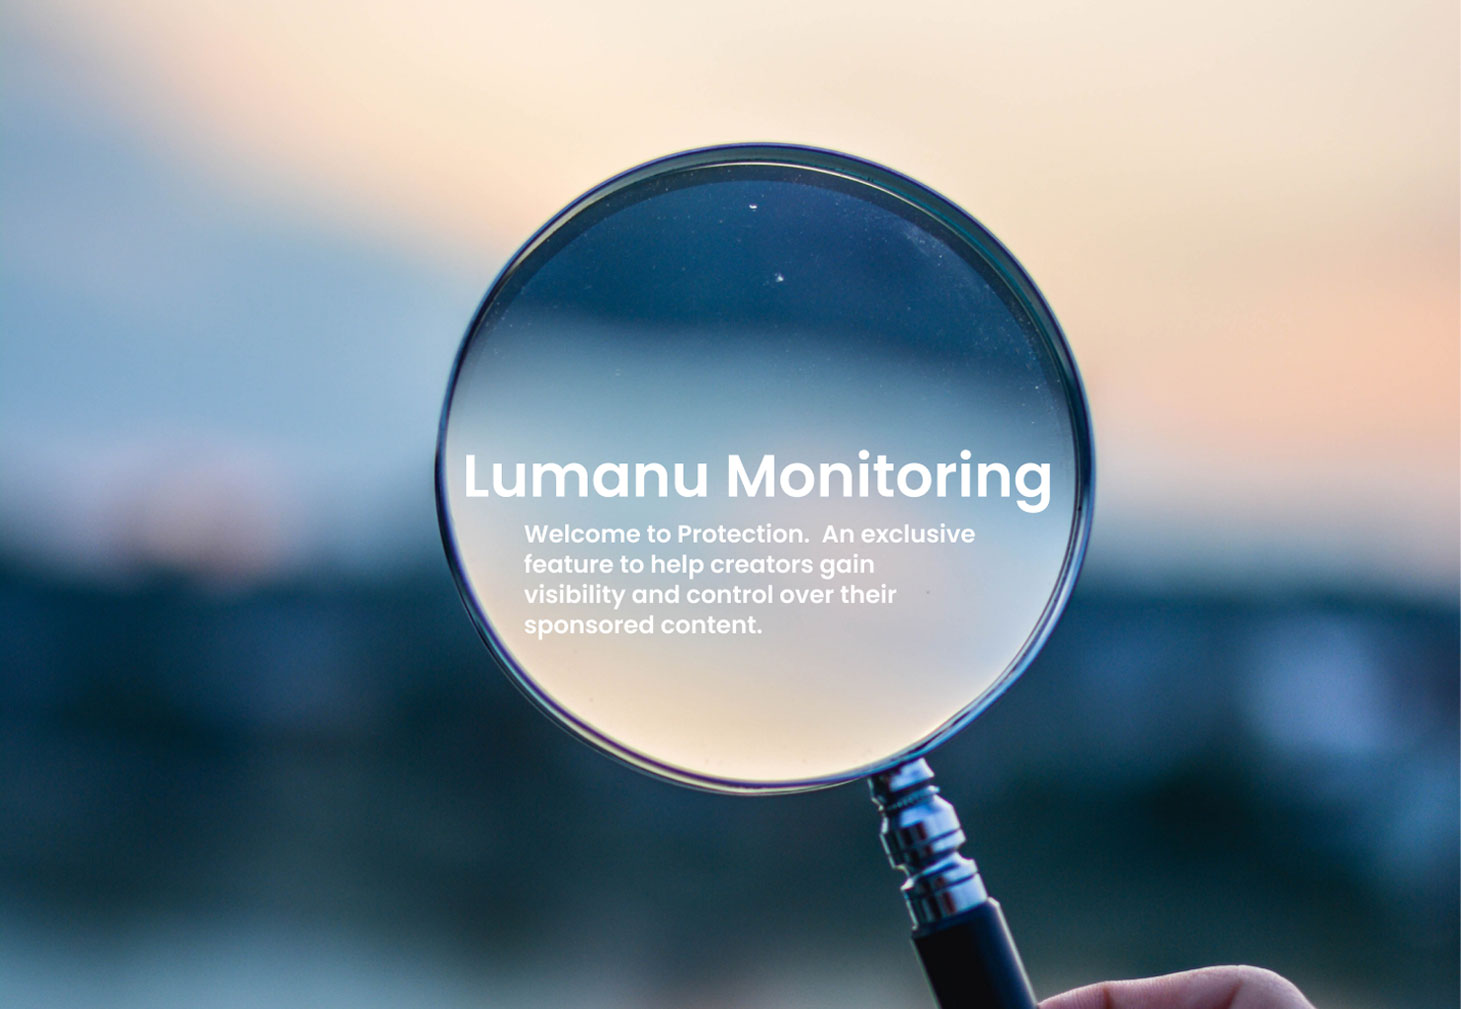 Learn how to navigate your Lumanu Monitoring dashboard to monitor content usage and understand its performancewhen used in sponsored ads.